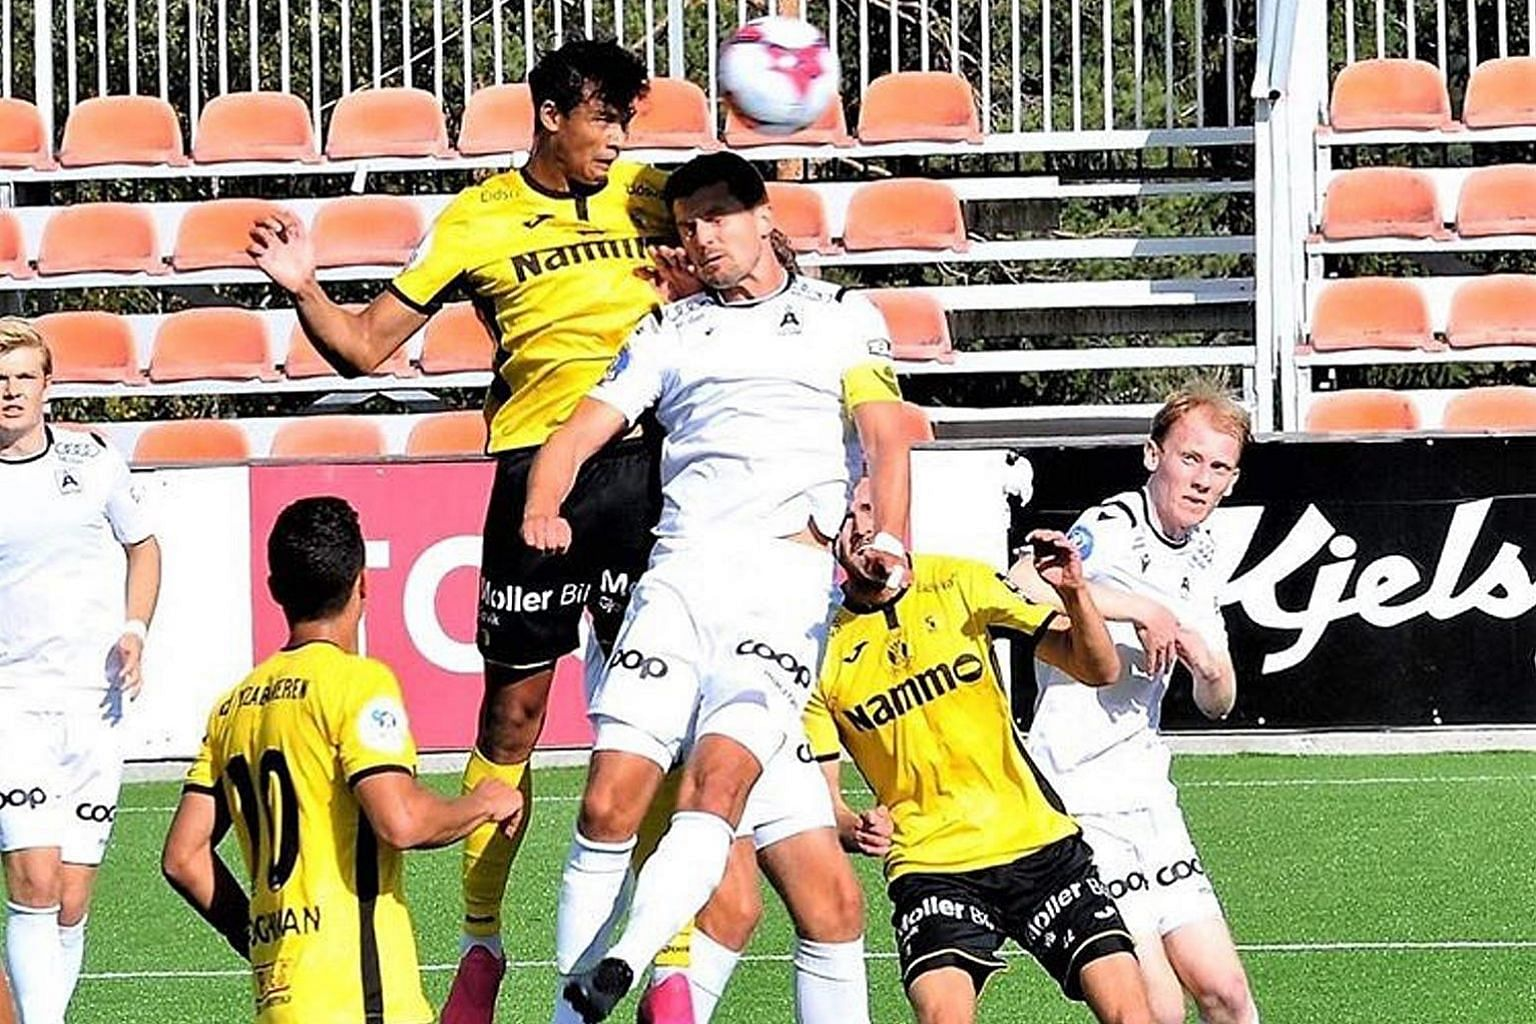 Singaporean Ikhsan Fandi heading home Raufoss' second goal against Asane for the 3-1 win in the second division of the Norwegian league on Sunday. PHOTO: COURTESY OF KNUT BEFRING